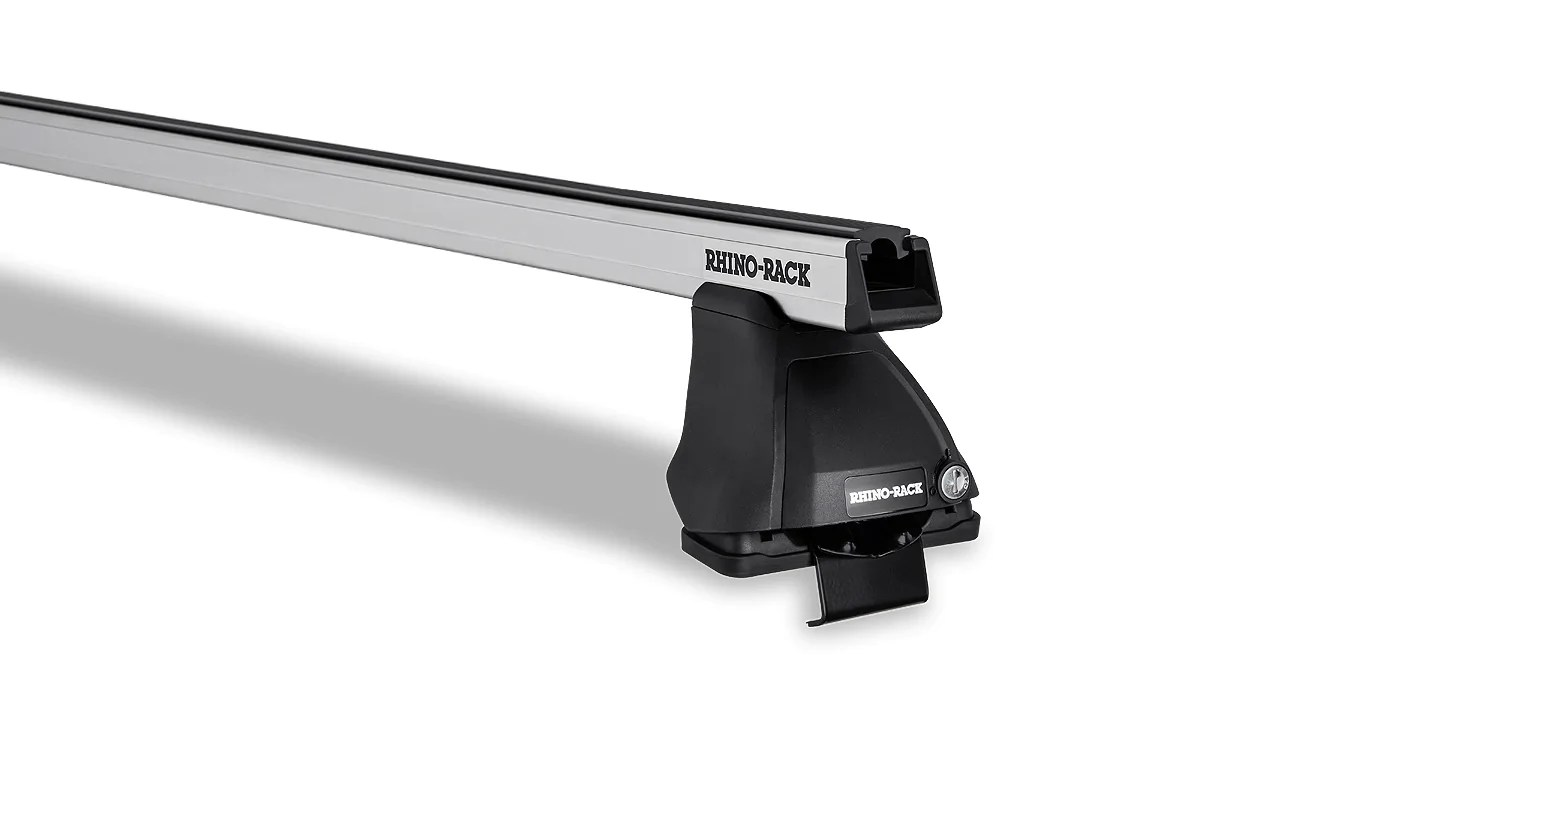 heavy duty 2500 roof rack ram 1500 4dr pick up classic quad cab 1 19 to 12 19